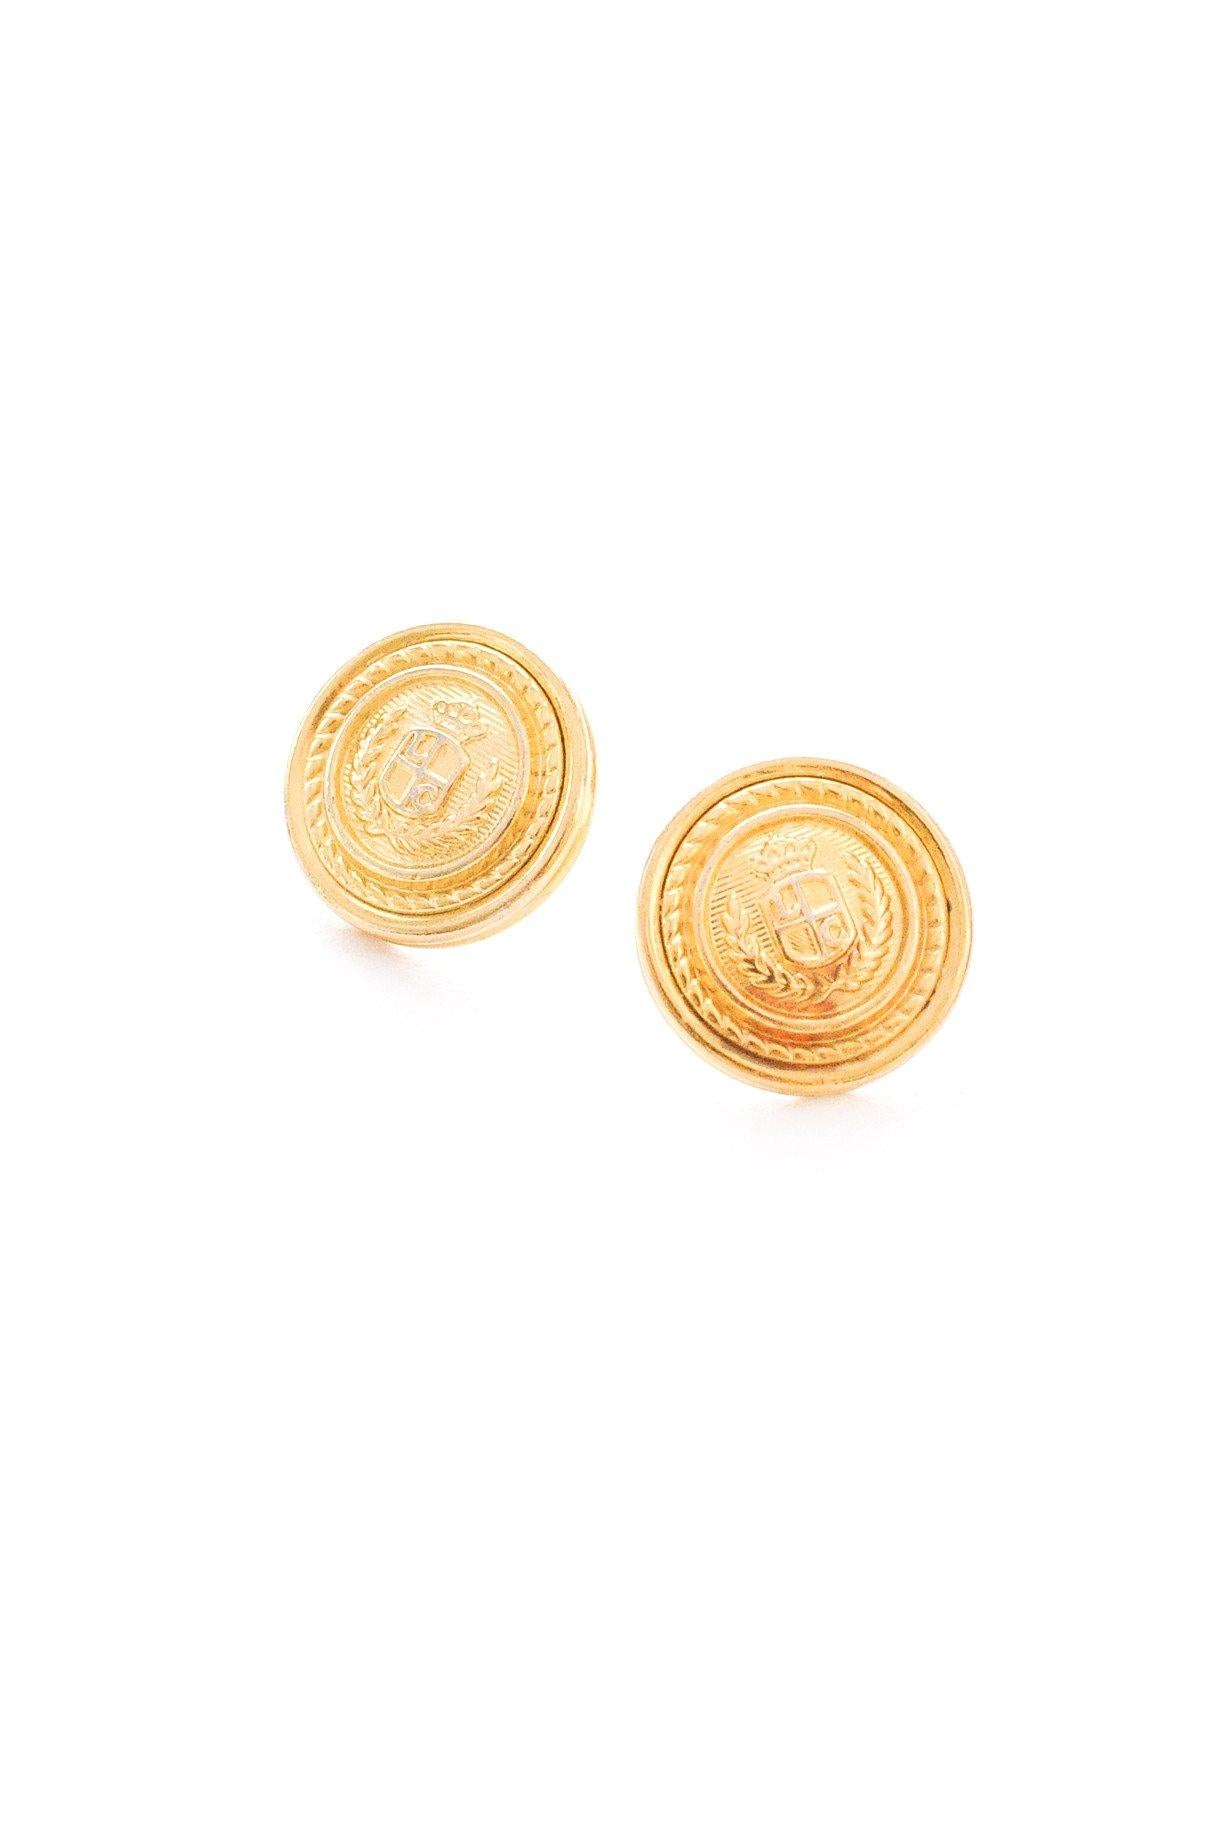 Classic Emblem Pierced Earrings